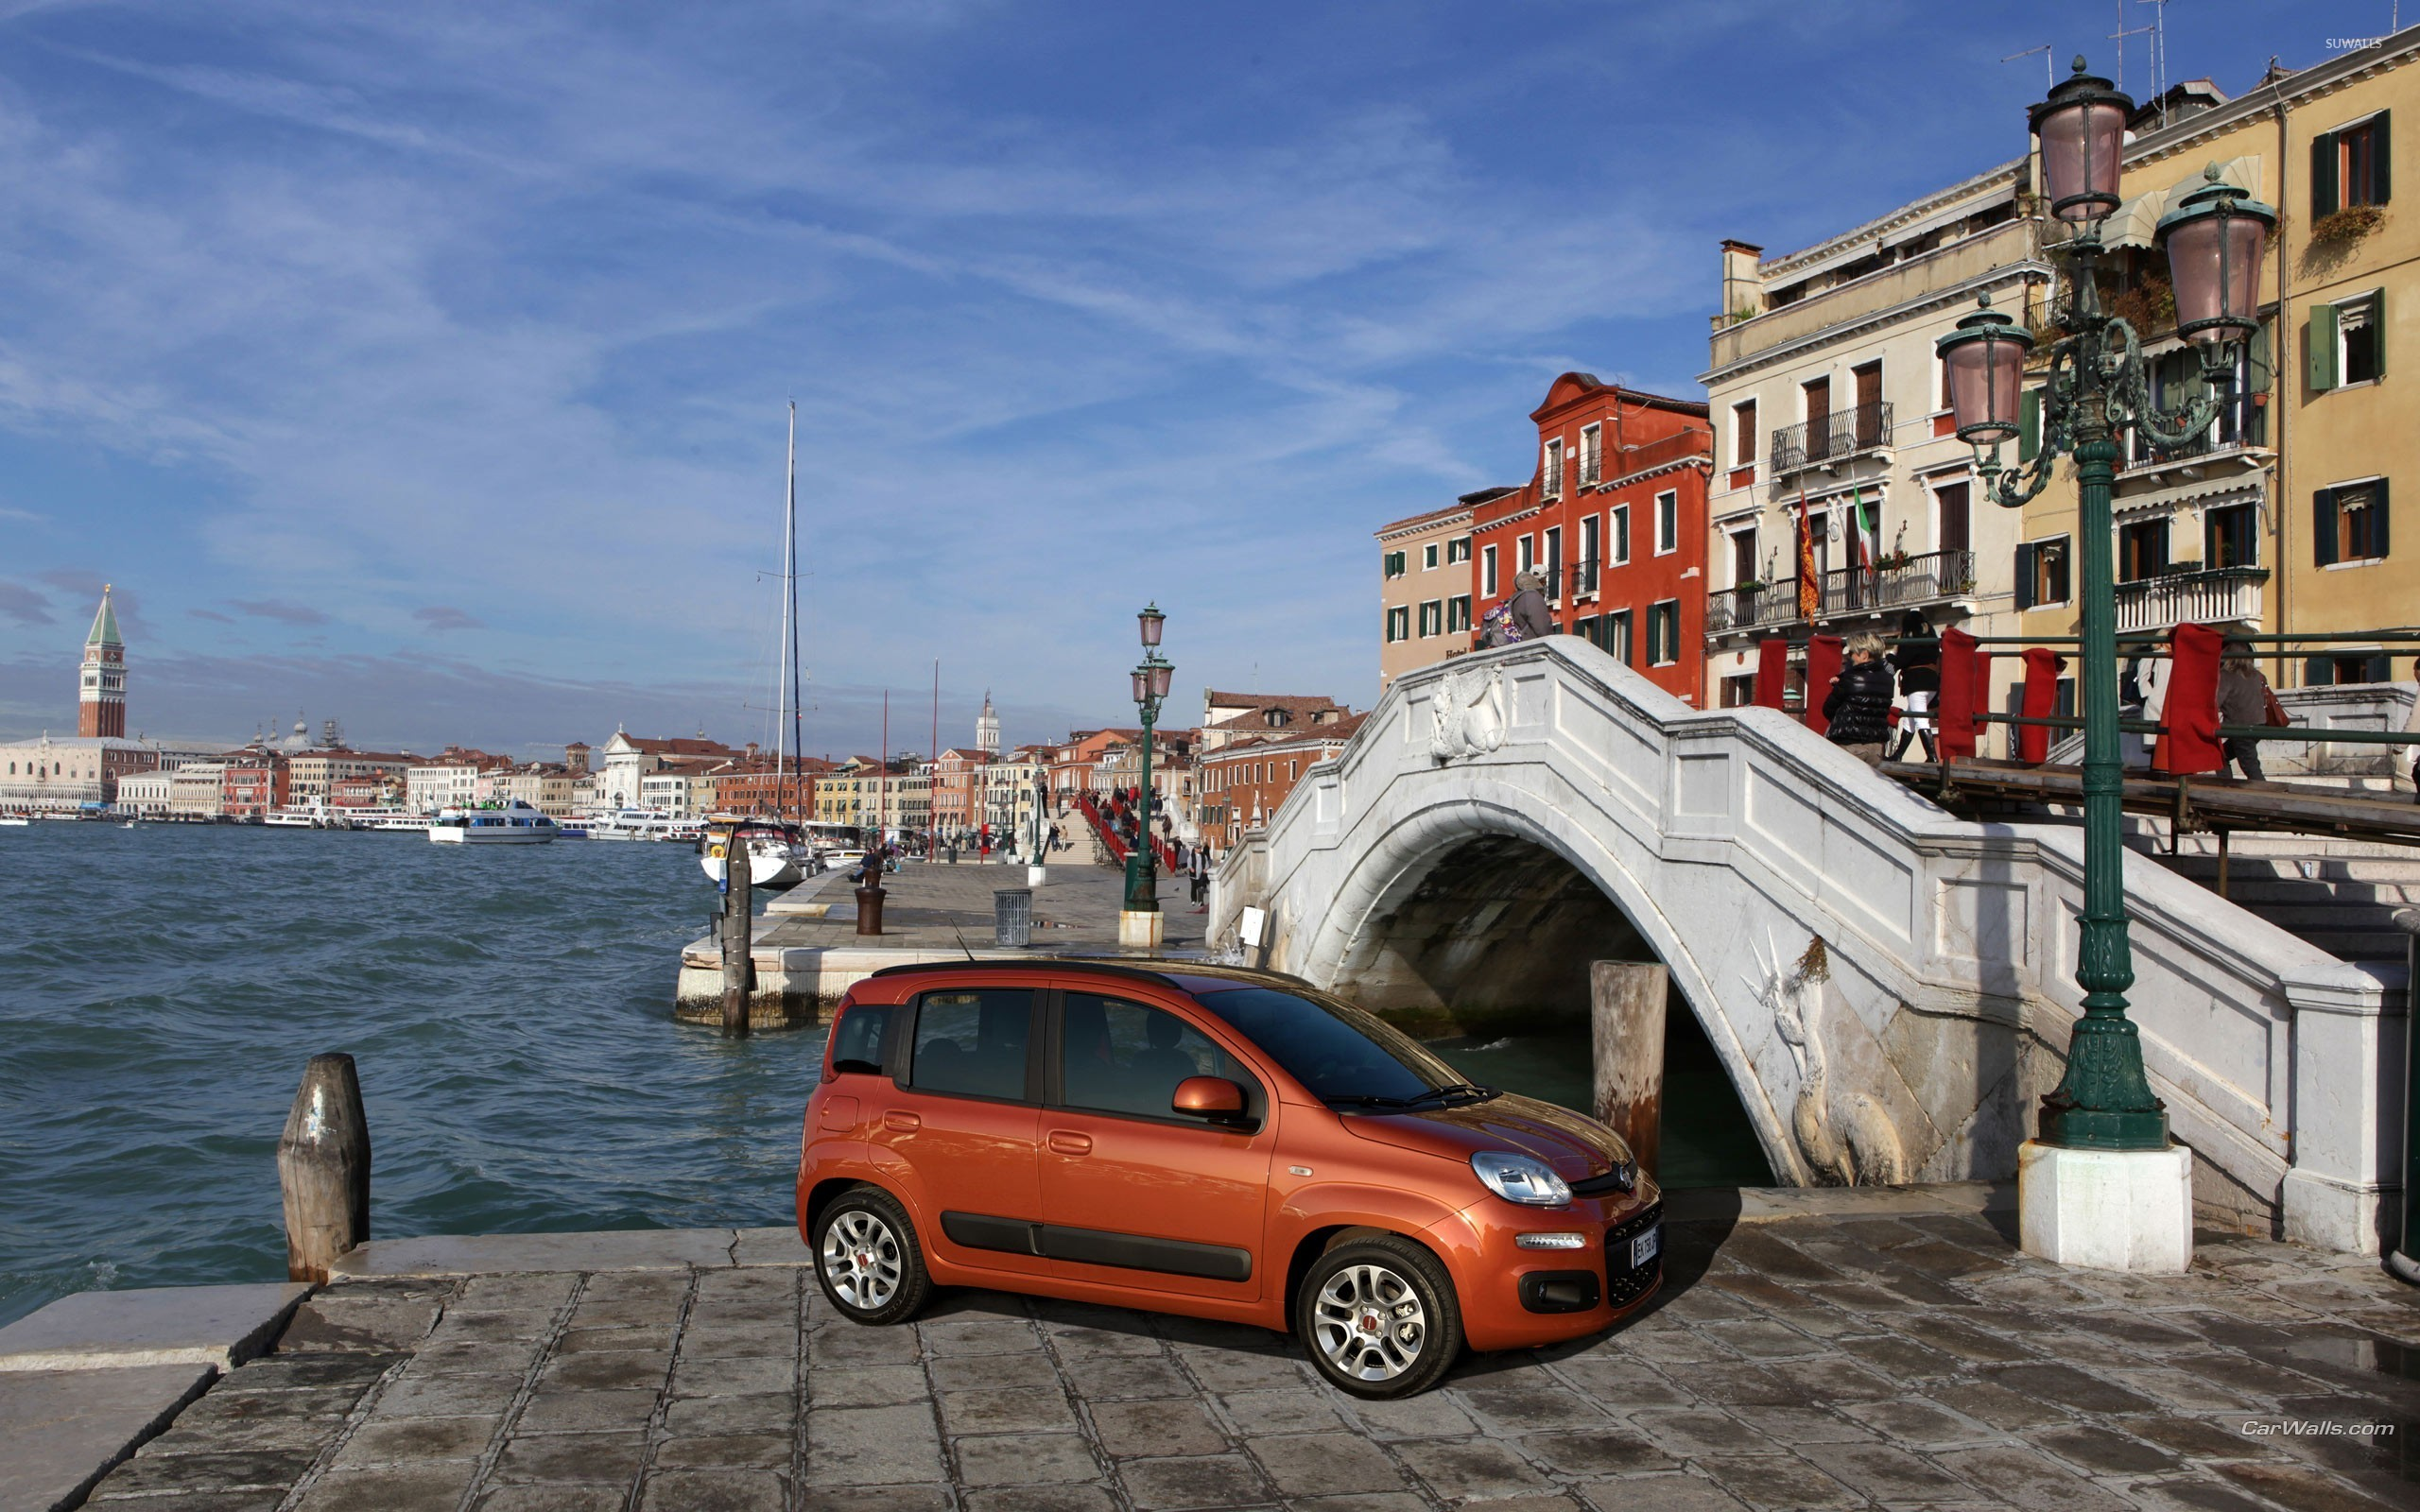 Red Fiat Panda in Venice wallpaper - Car wallpapers - #51283